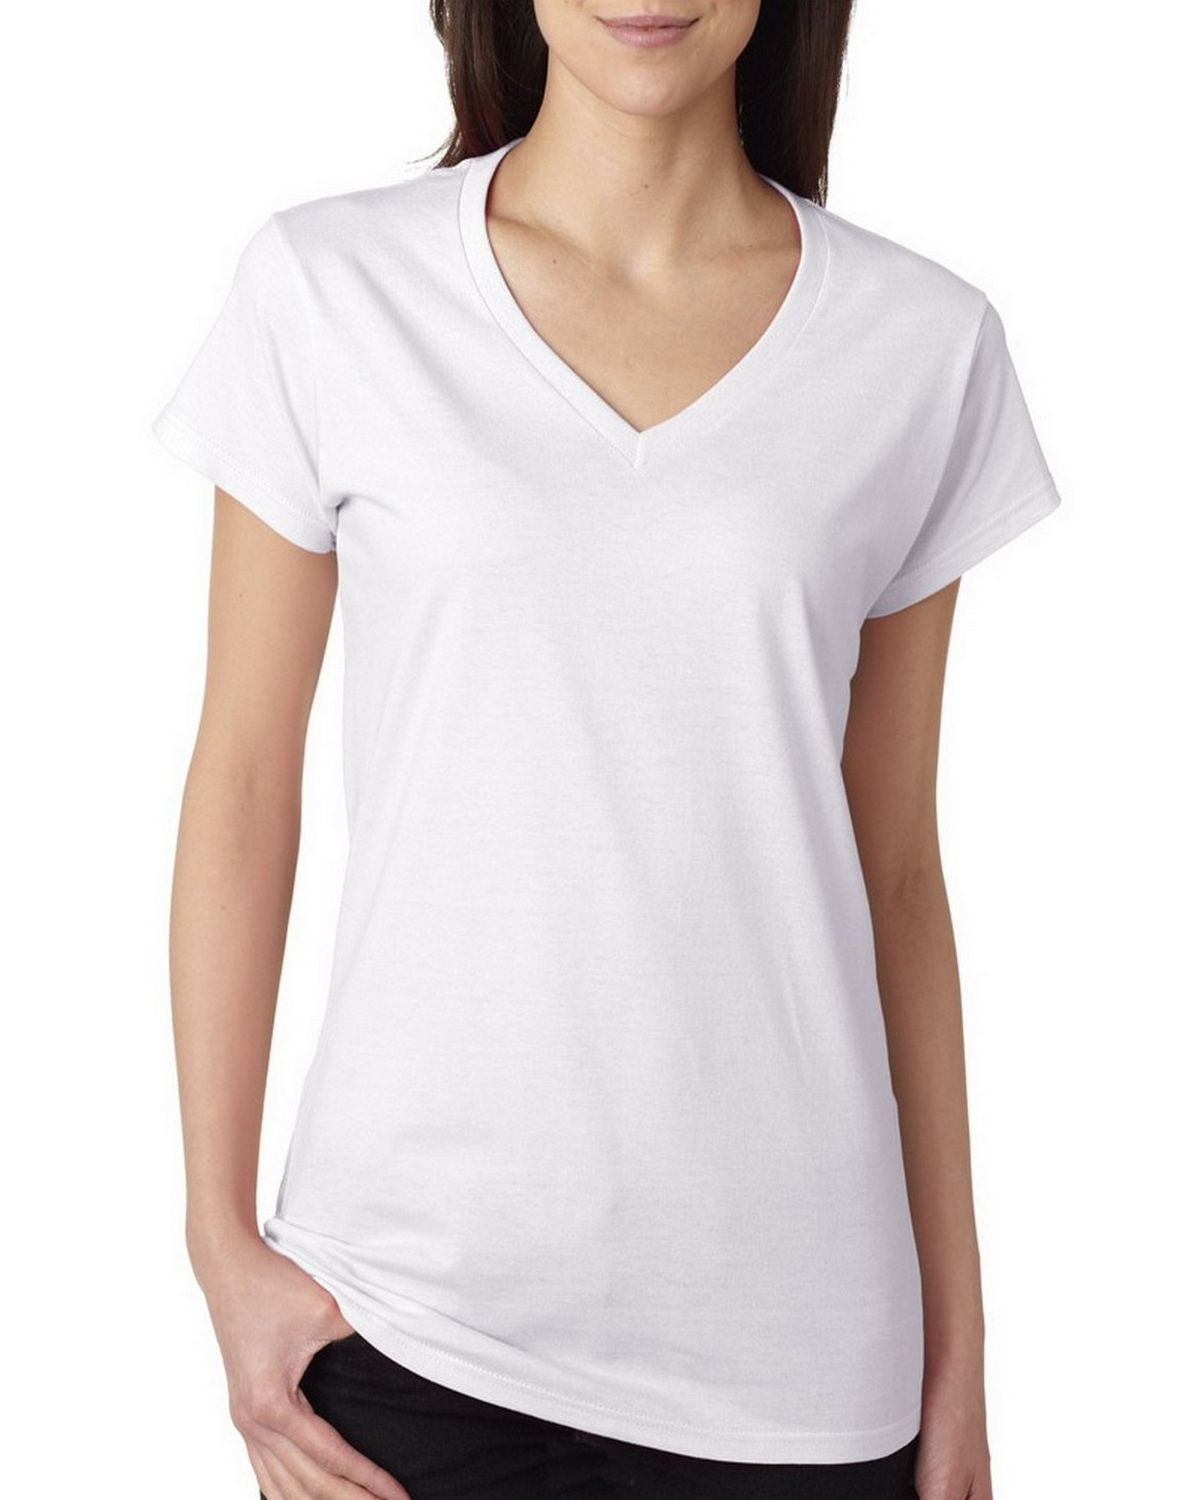 Classic Universal Thread™ V-neck tee is a versatile choice for any outfit V-neckline and front pocket add an interesting twist to the simple silhouette Pairs easily with your favorite jeans or any other bottoms.